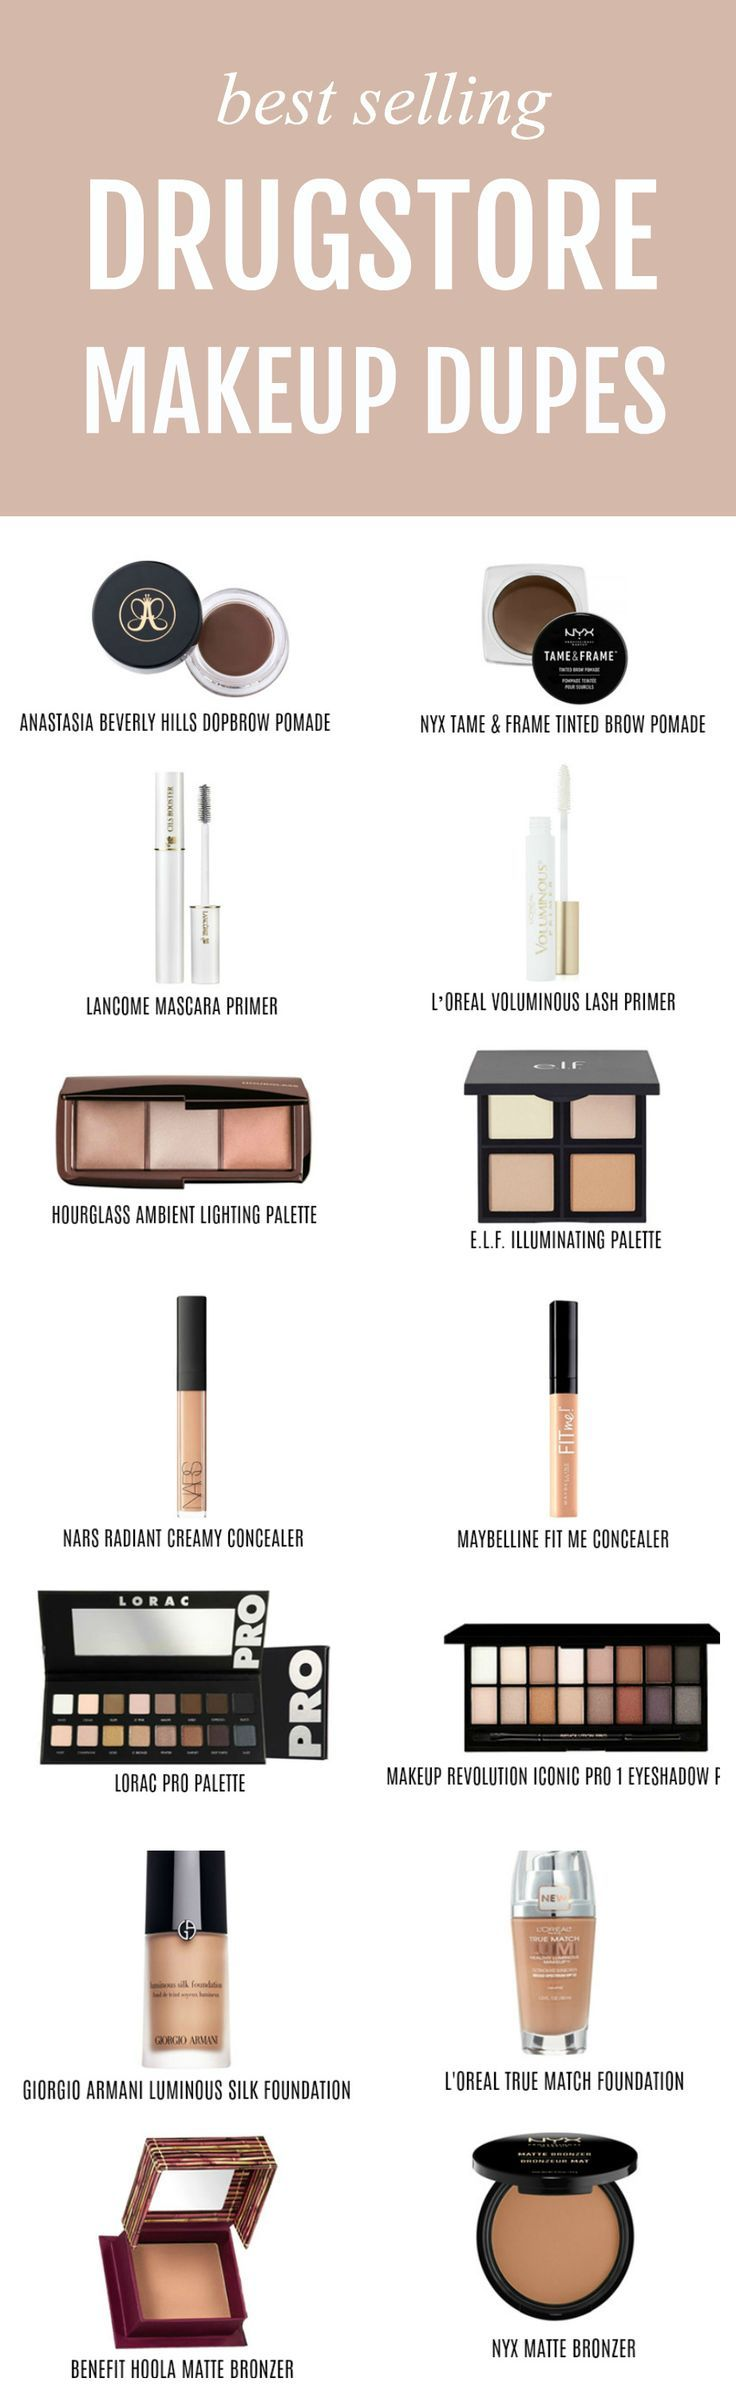 I need every single dupe!   Beauty blogger Michelle Kehoe of Mash Elle shares the best affordable drugstore makeup dupes of some of your favorite high end makeup products! Discover dupes for Urban Decay, Hourglass, Too Faced, Lnacome, MAC, Laura Mercier, Anastasia Beverly Hills, Estee Lauder, NARS, YSL, Lorac, Giorgio Armani, Benefit, Chanel and more! Plus, discover my amazing money saving hack with @topcashbackUSA #ad #drugstoremakeup #makeupdupes #makeup #affordablemakeup